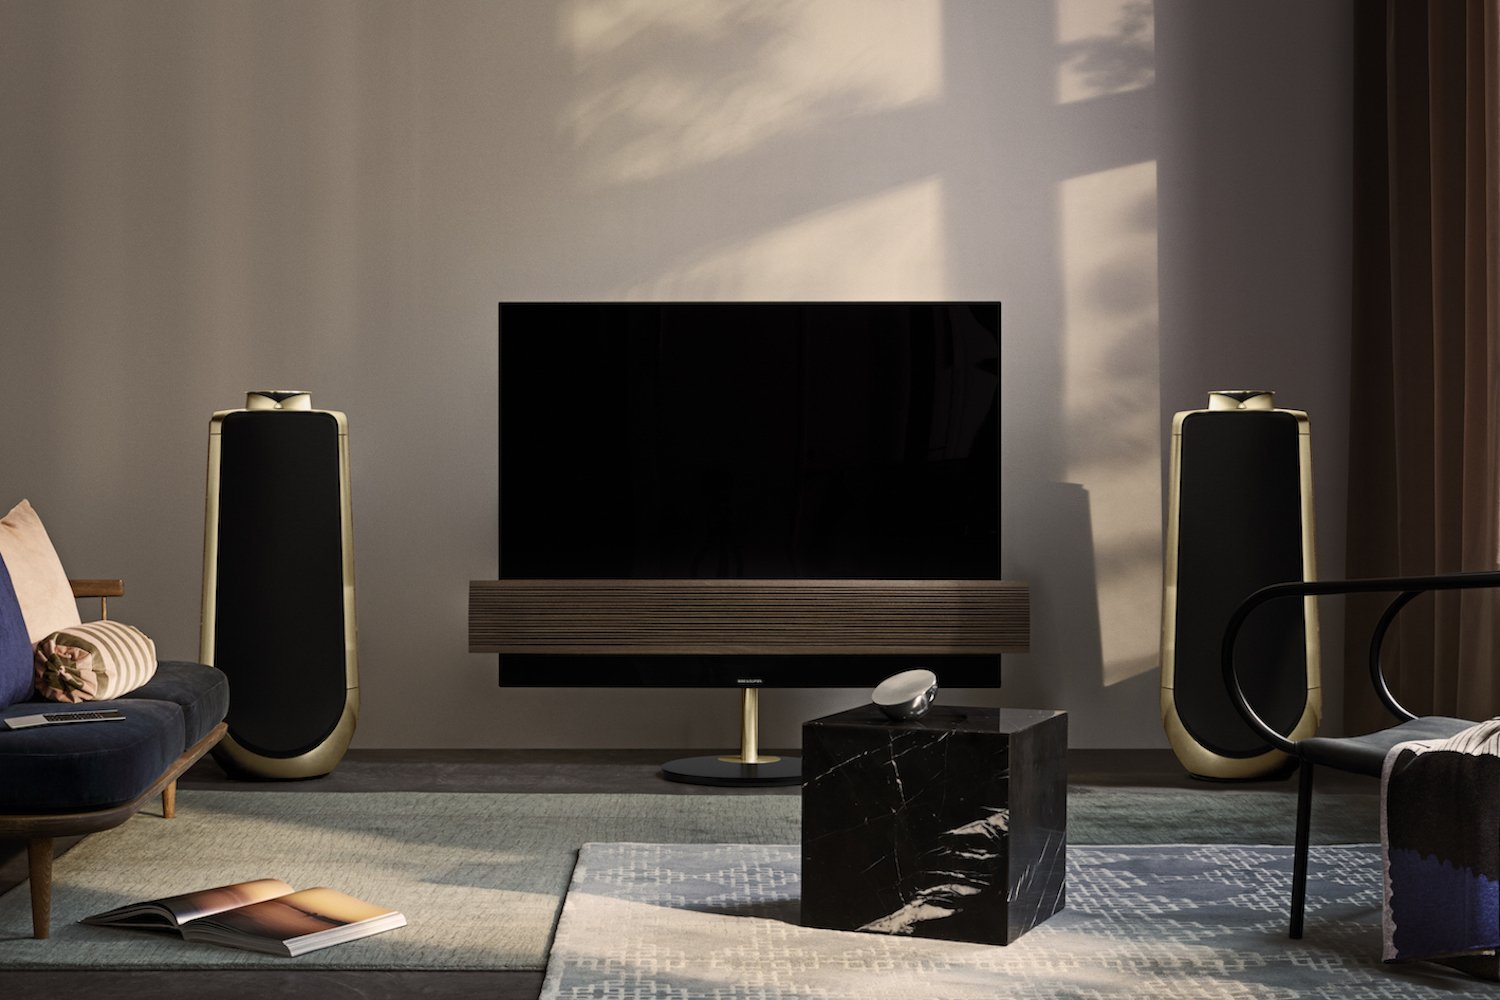 Most Expensive Cars >> Bang & Olufsen's stunning OLED TV and speaker get a new wood and brass finished edition